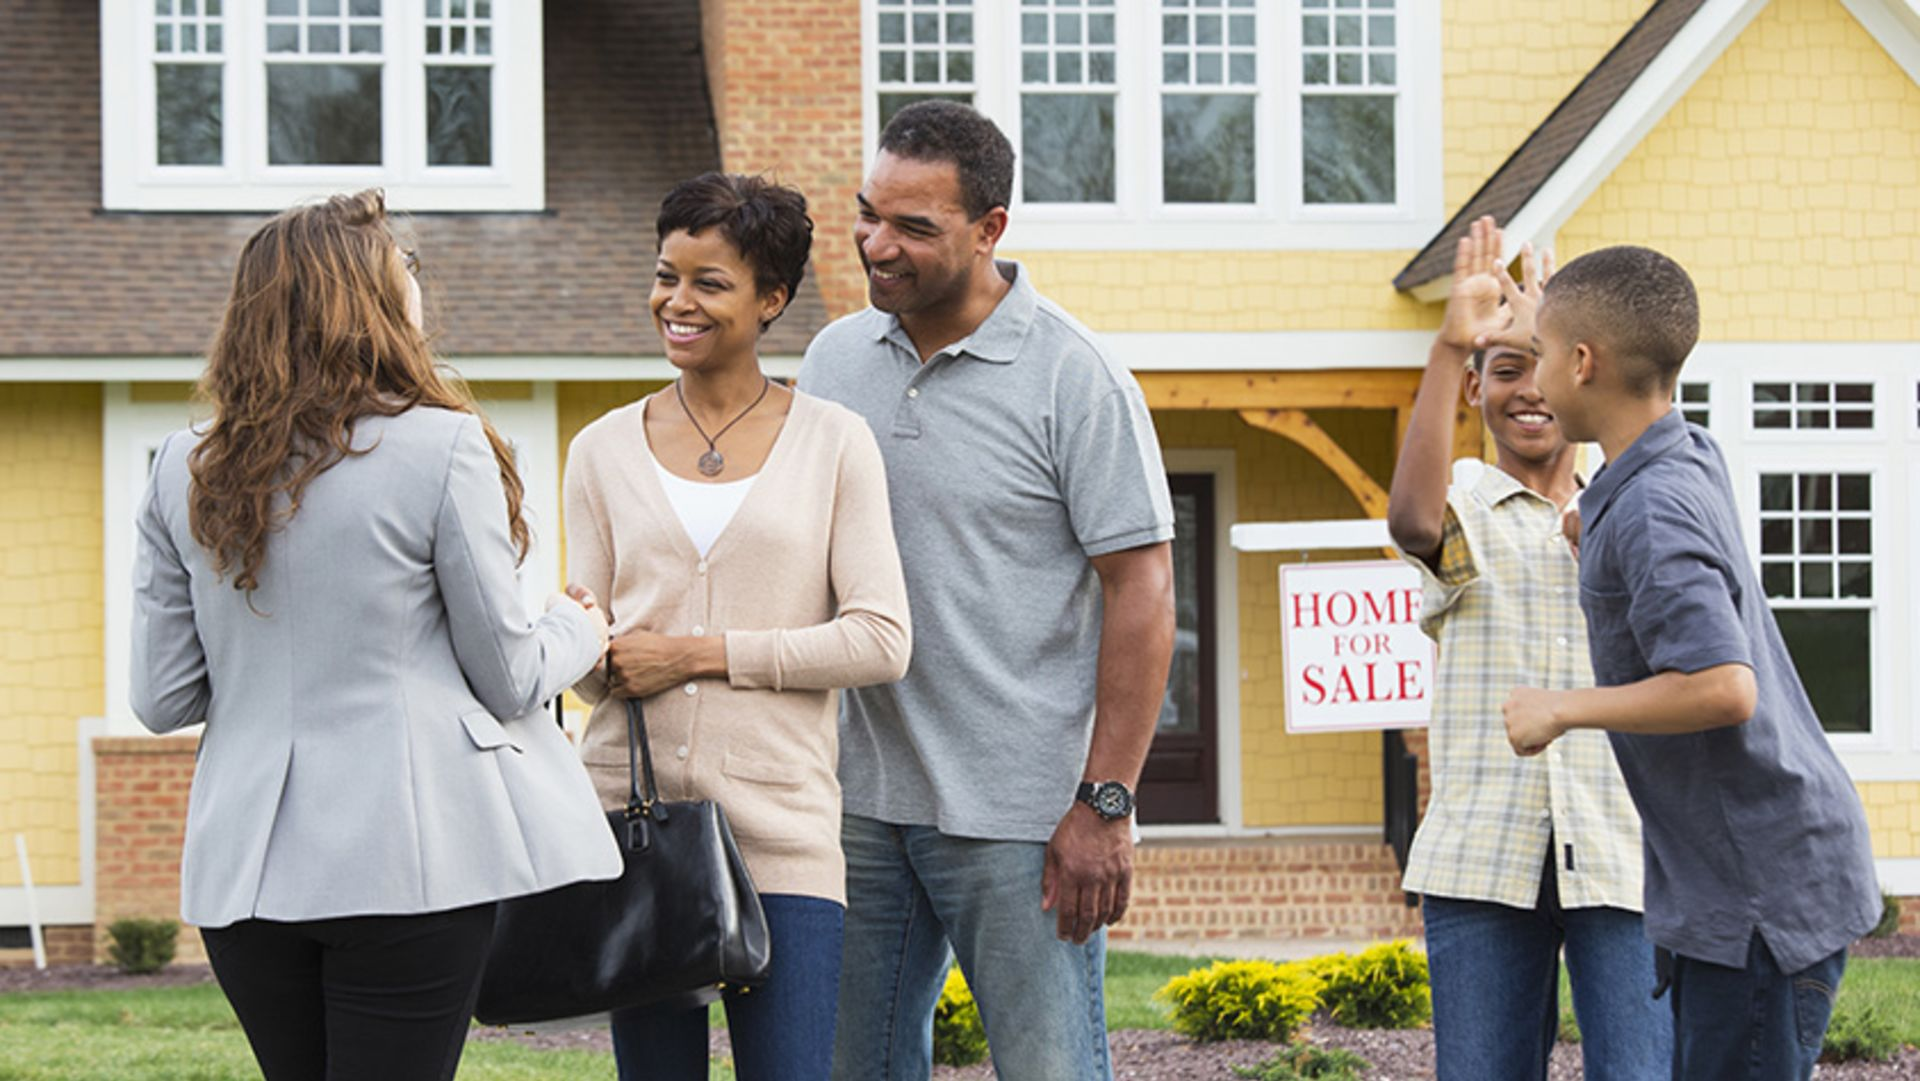 Stages of the Home Buying Journey